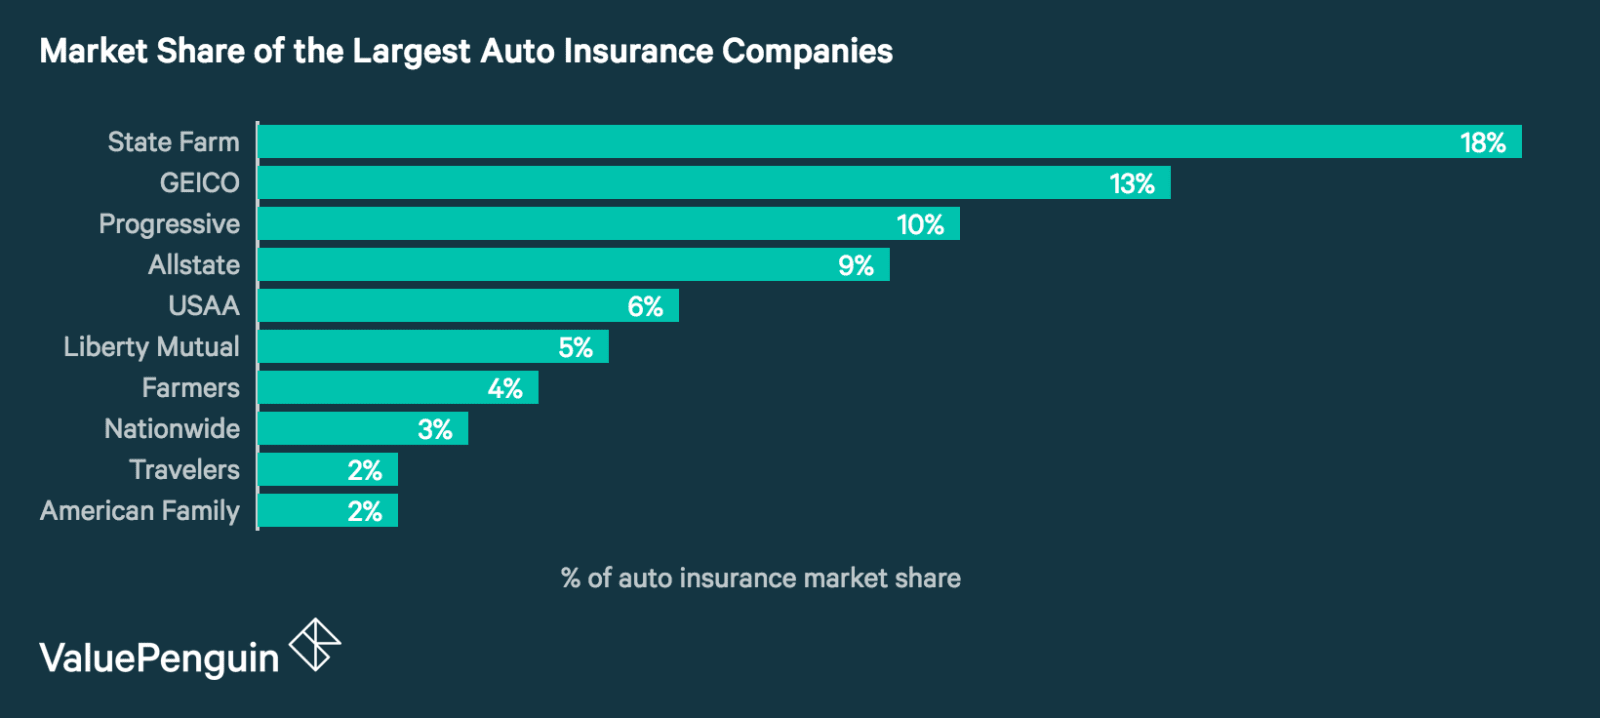 Average Car Insurance >> The Top Ten Largest Auto Insurance Companies of 2018 - ValuePenguin